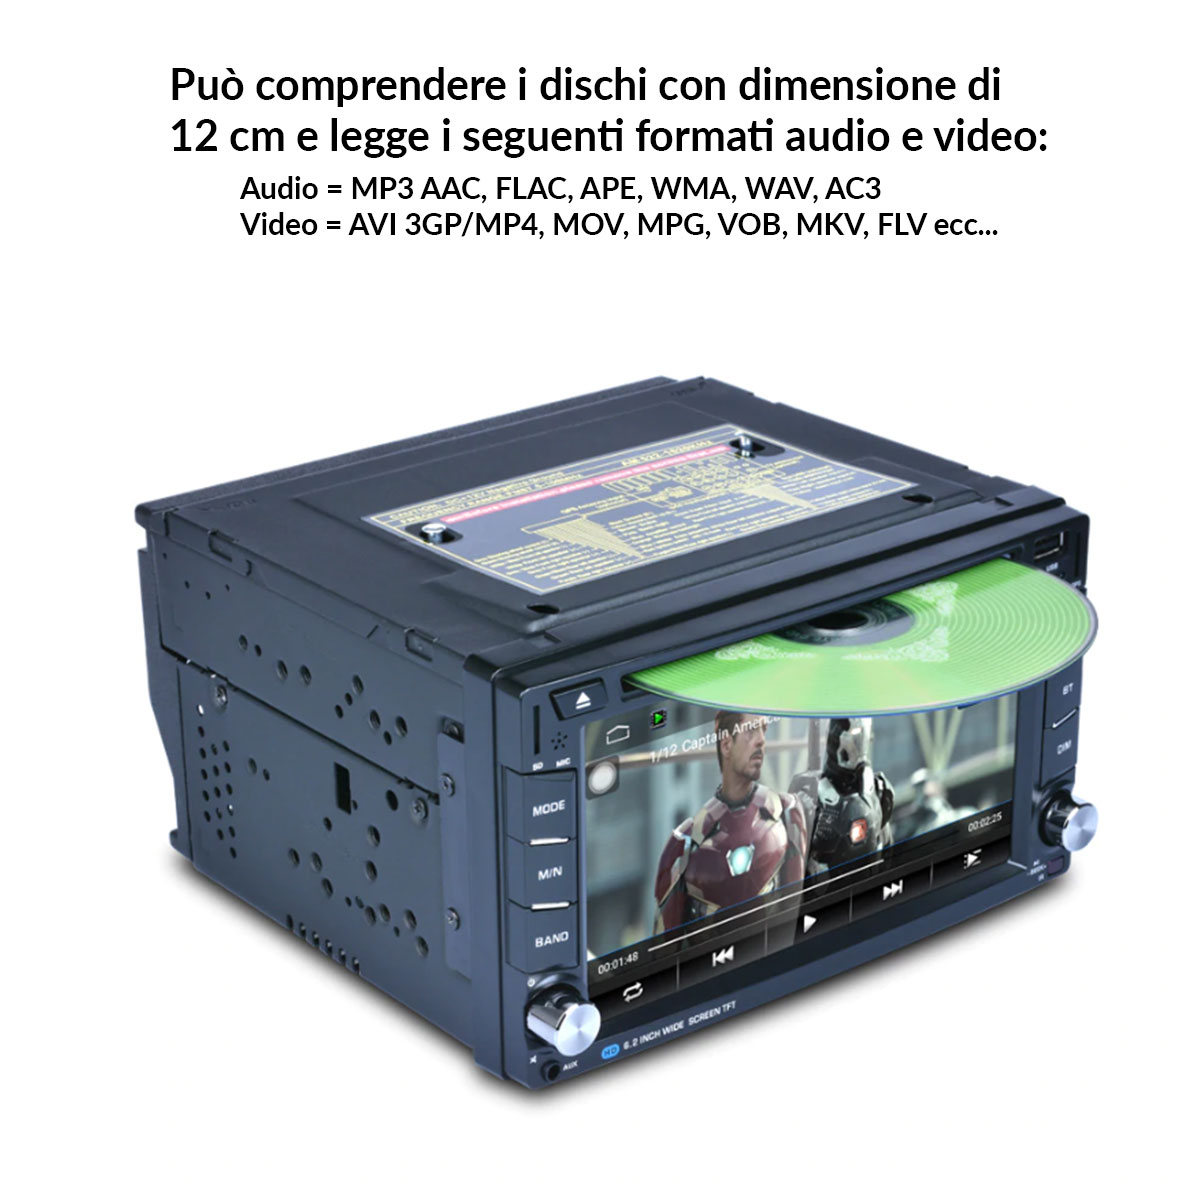 autoradio con display touchscreen capacitivo